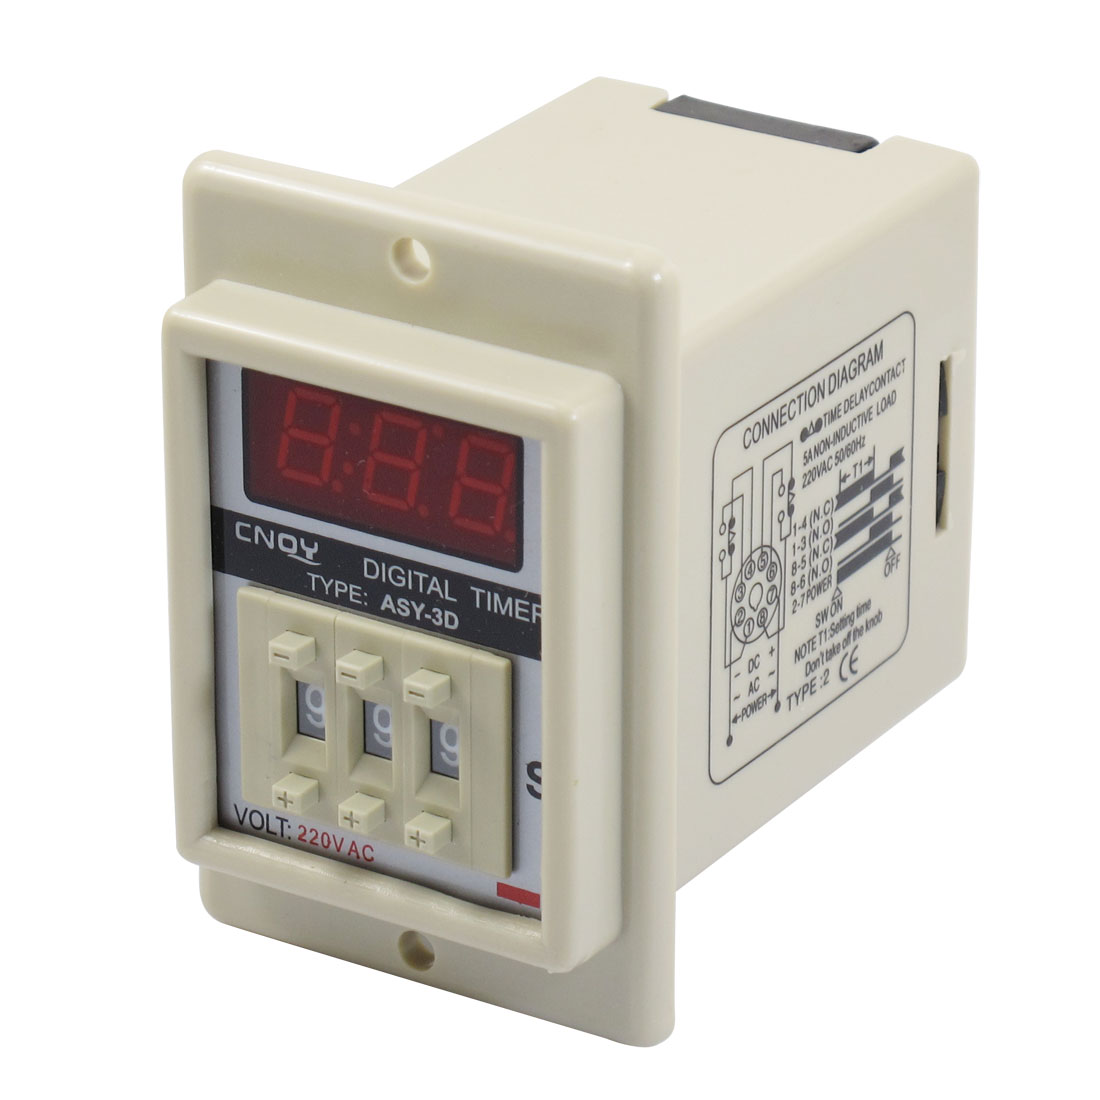 AC 220V 8 Pin 0.1-9.99 Second Digital Timer Time Delay Relay Beige ASY-3D